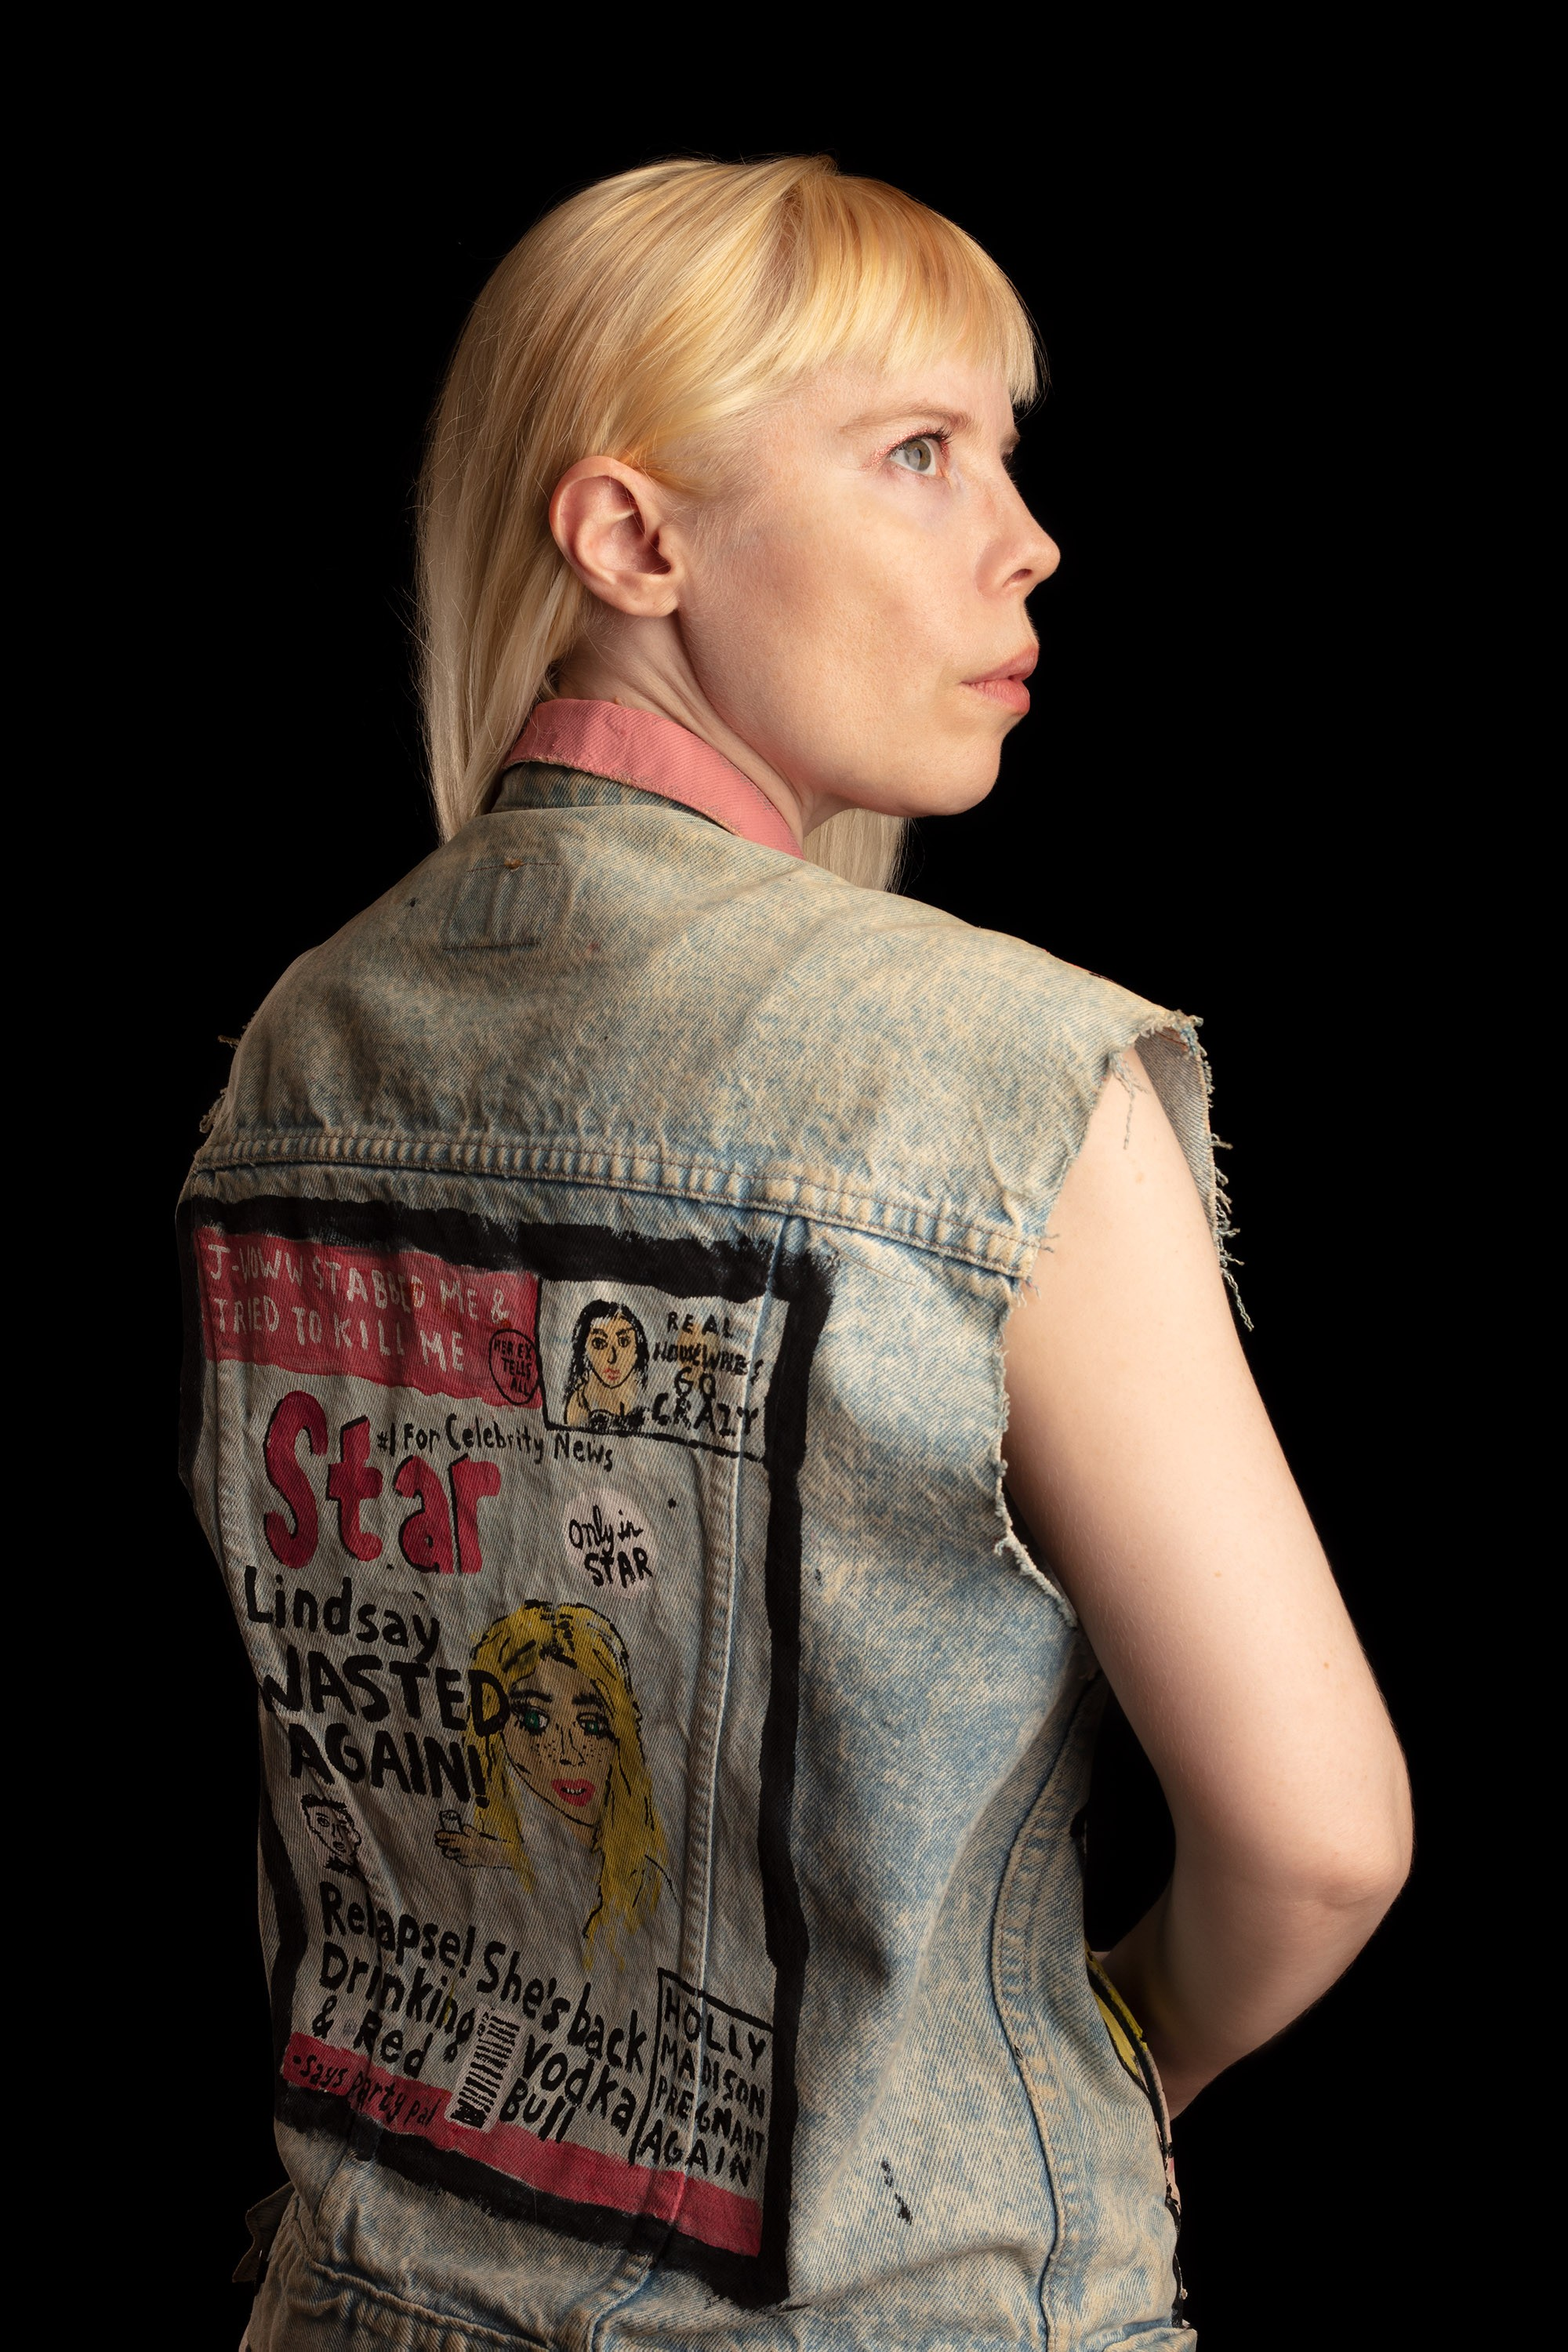 Kate Durbin is standing facing away from the camera, with her face visible in profile, wearing a cutoff denim vest with an illustrated tabloid cover on the back.